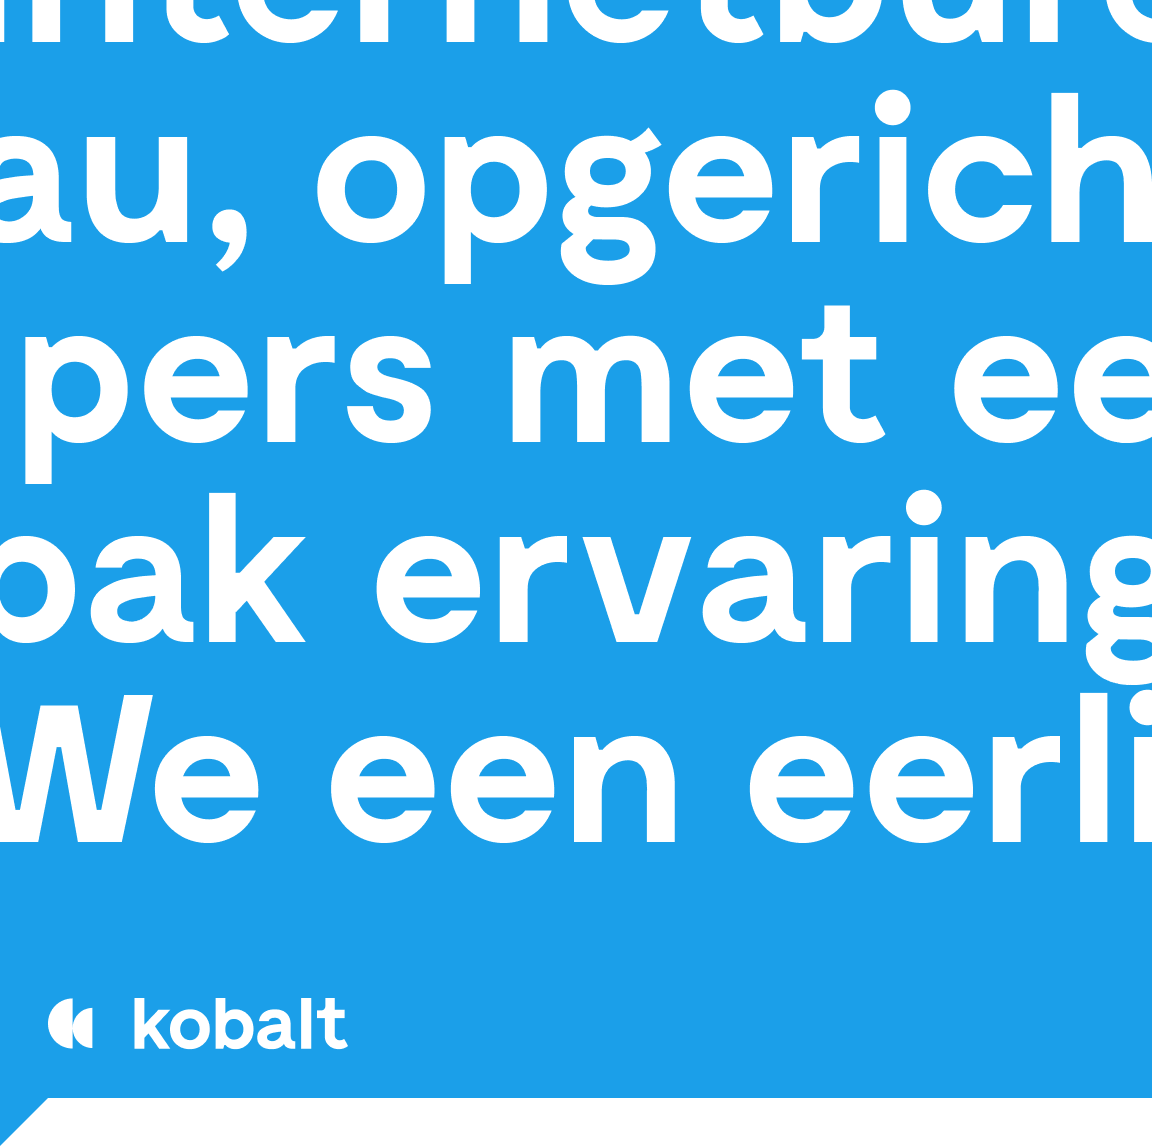 Kobalt Digital